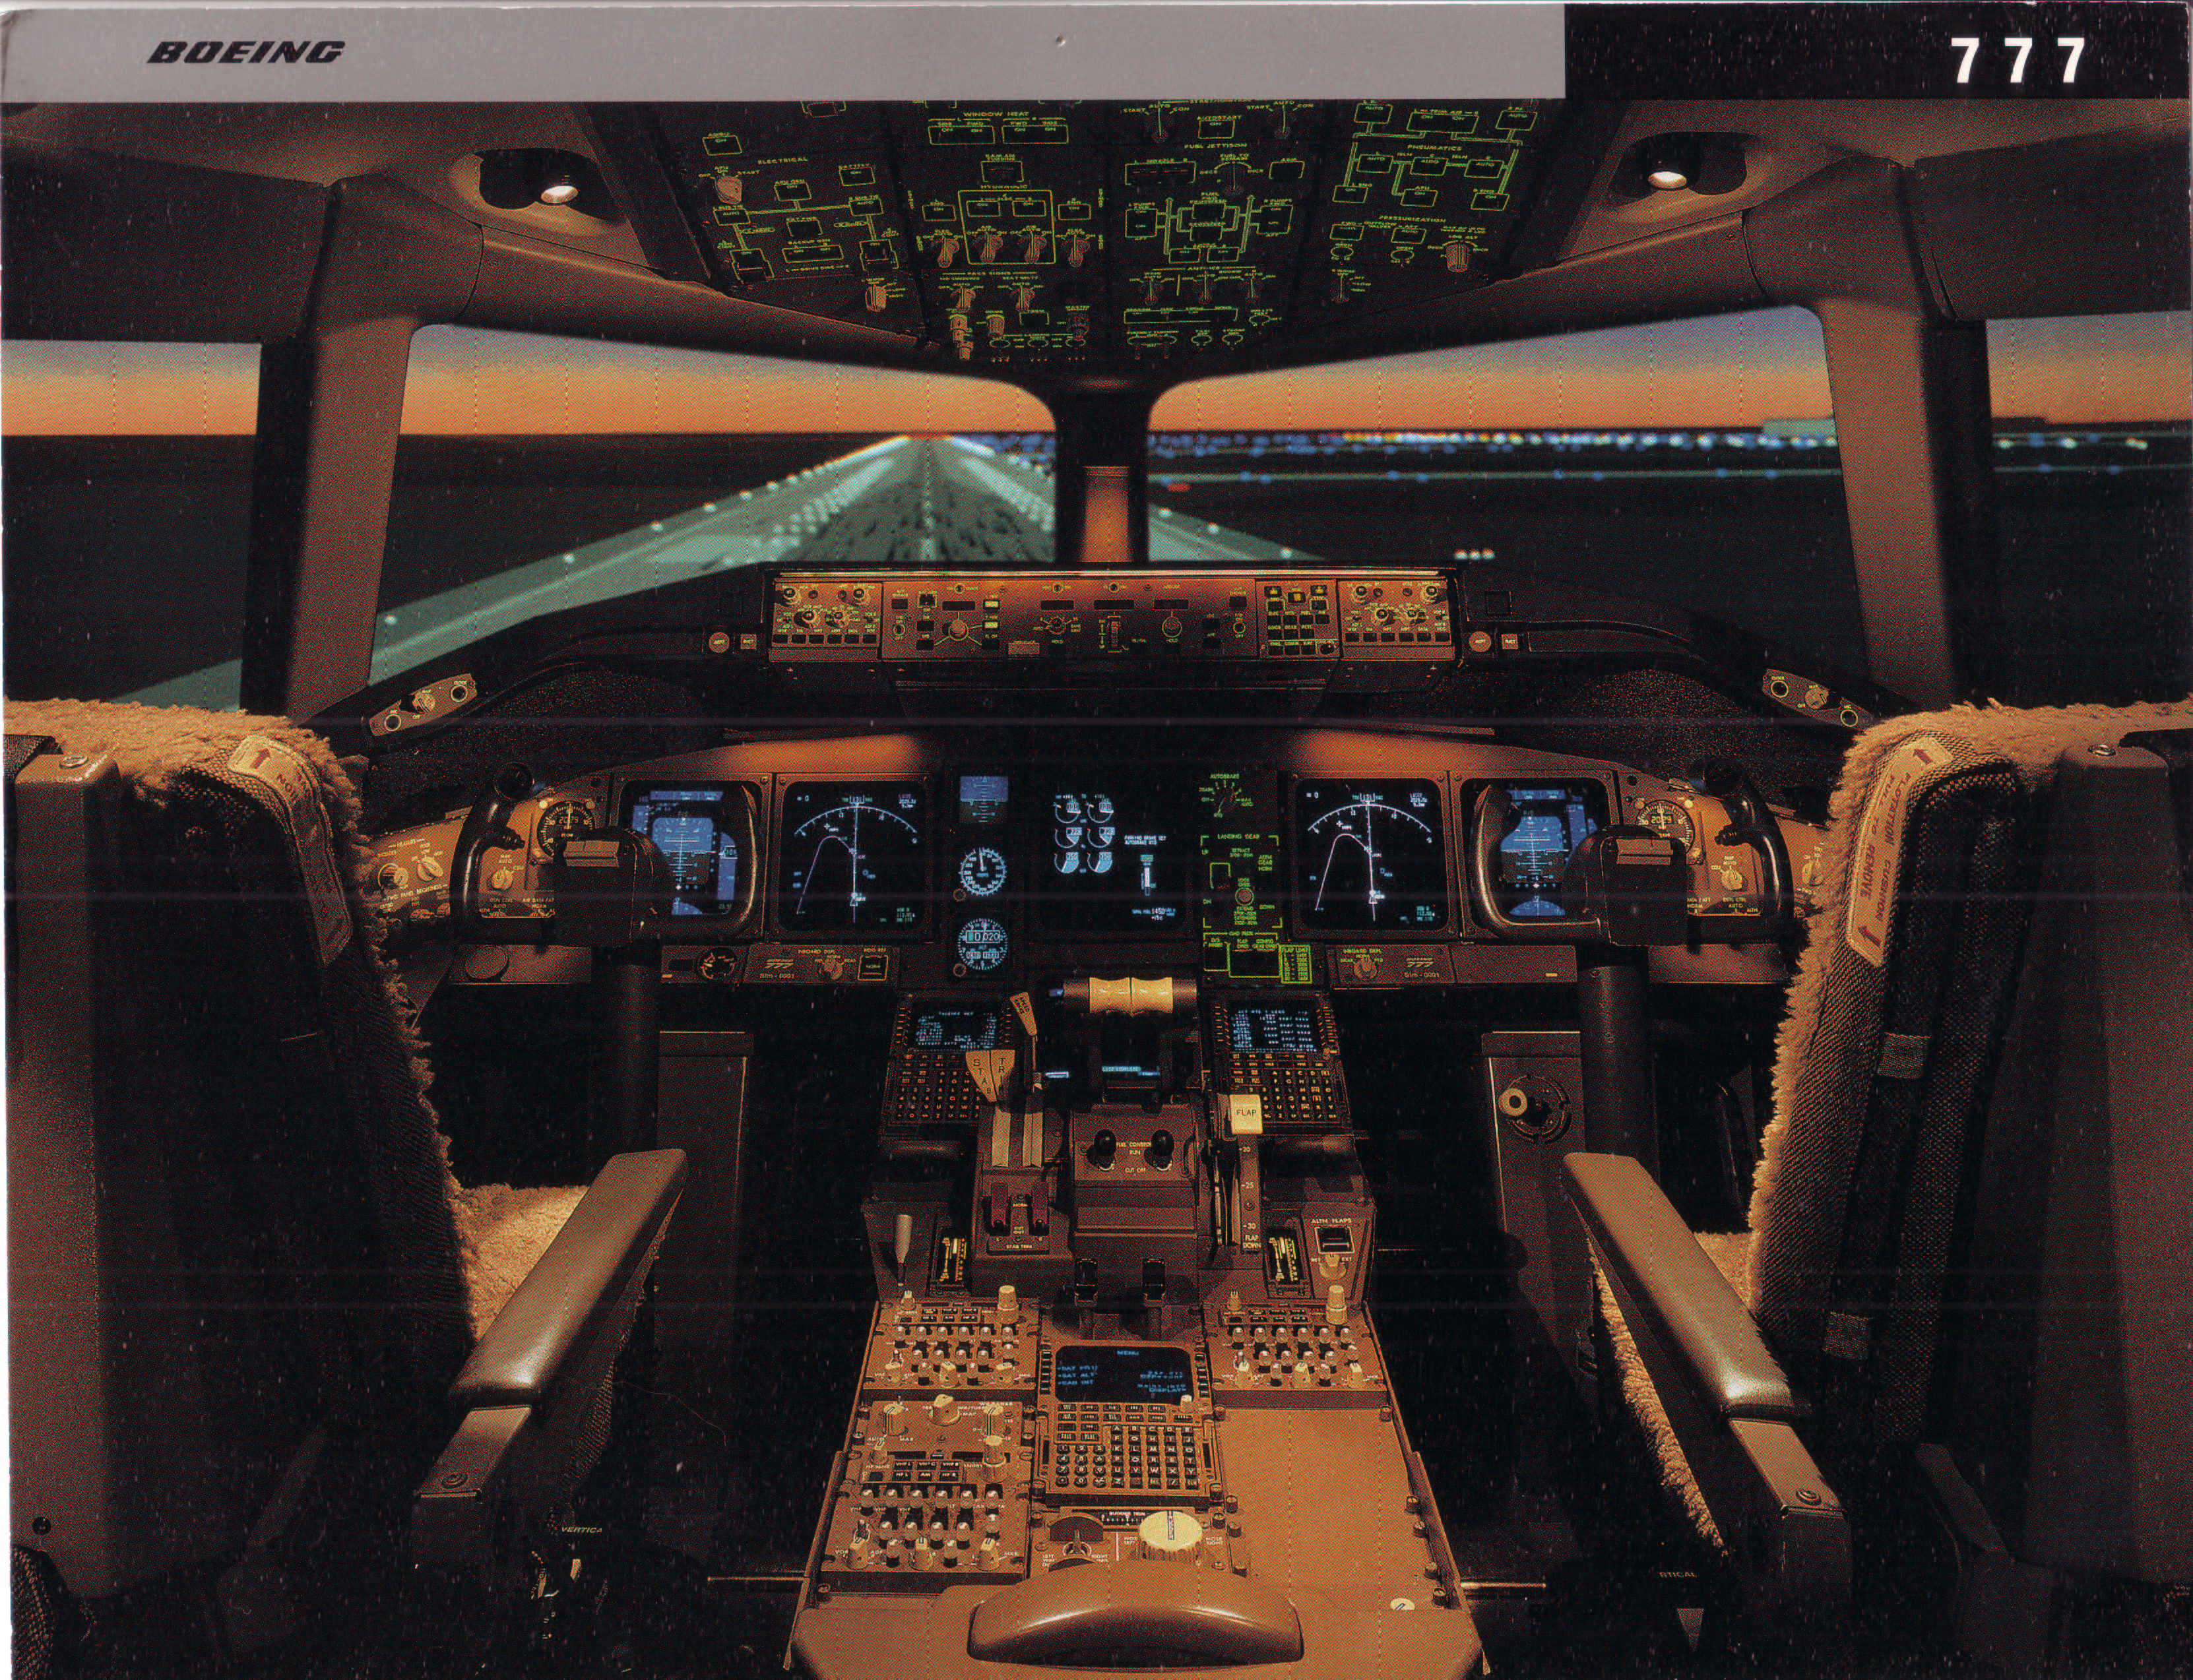 The Boeing 777 Flight Deck Video Arcade